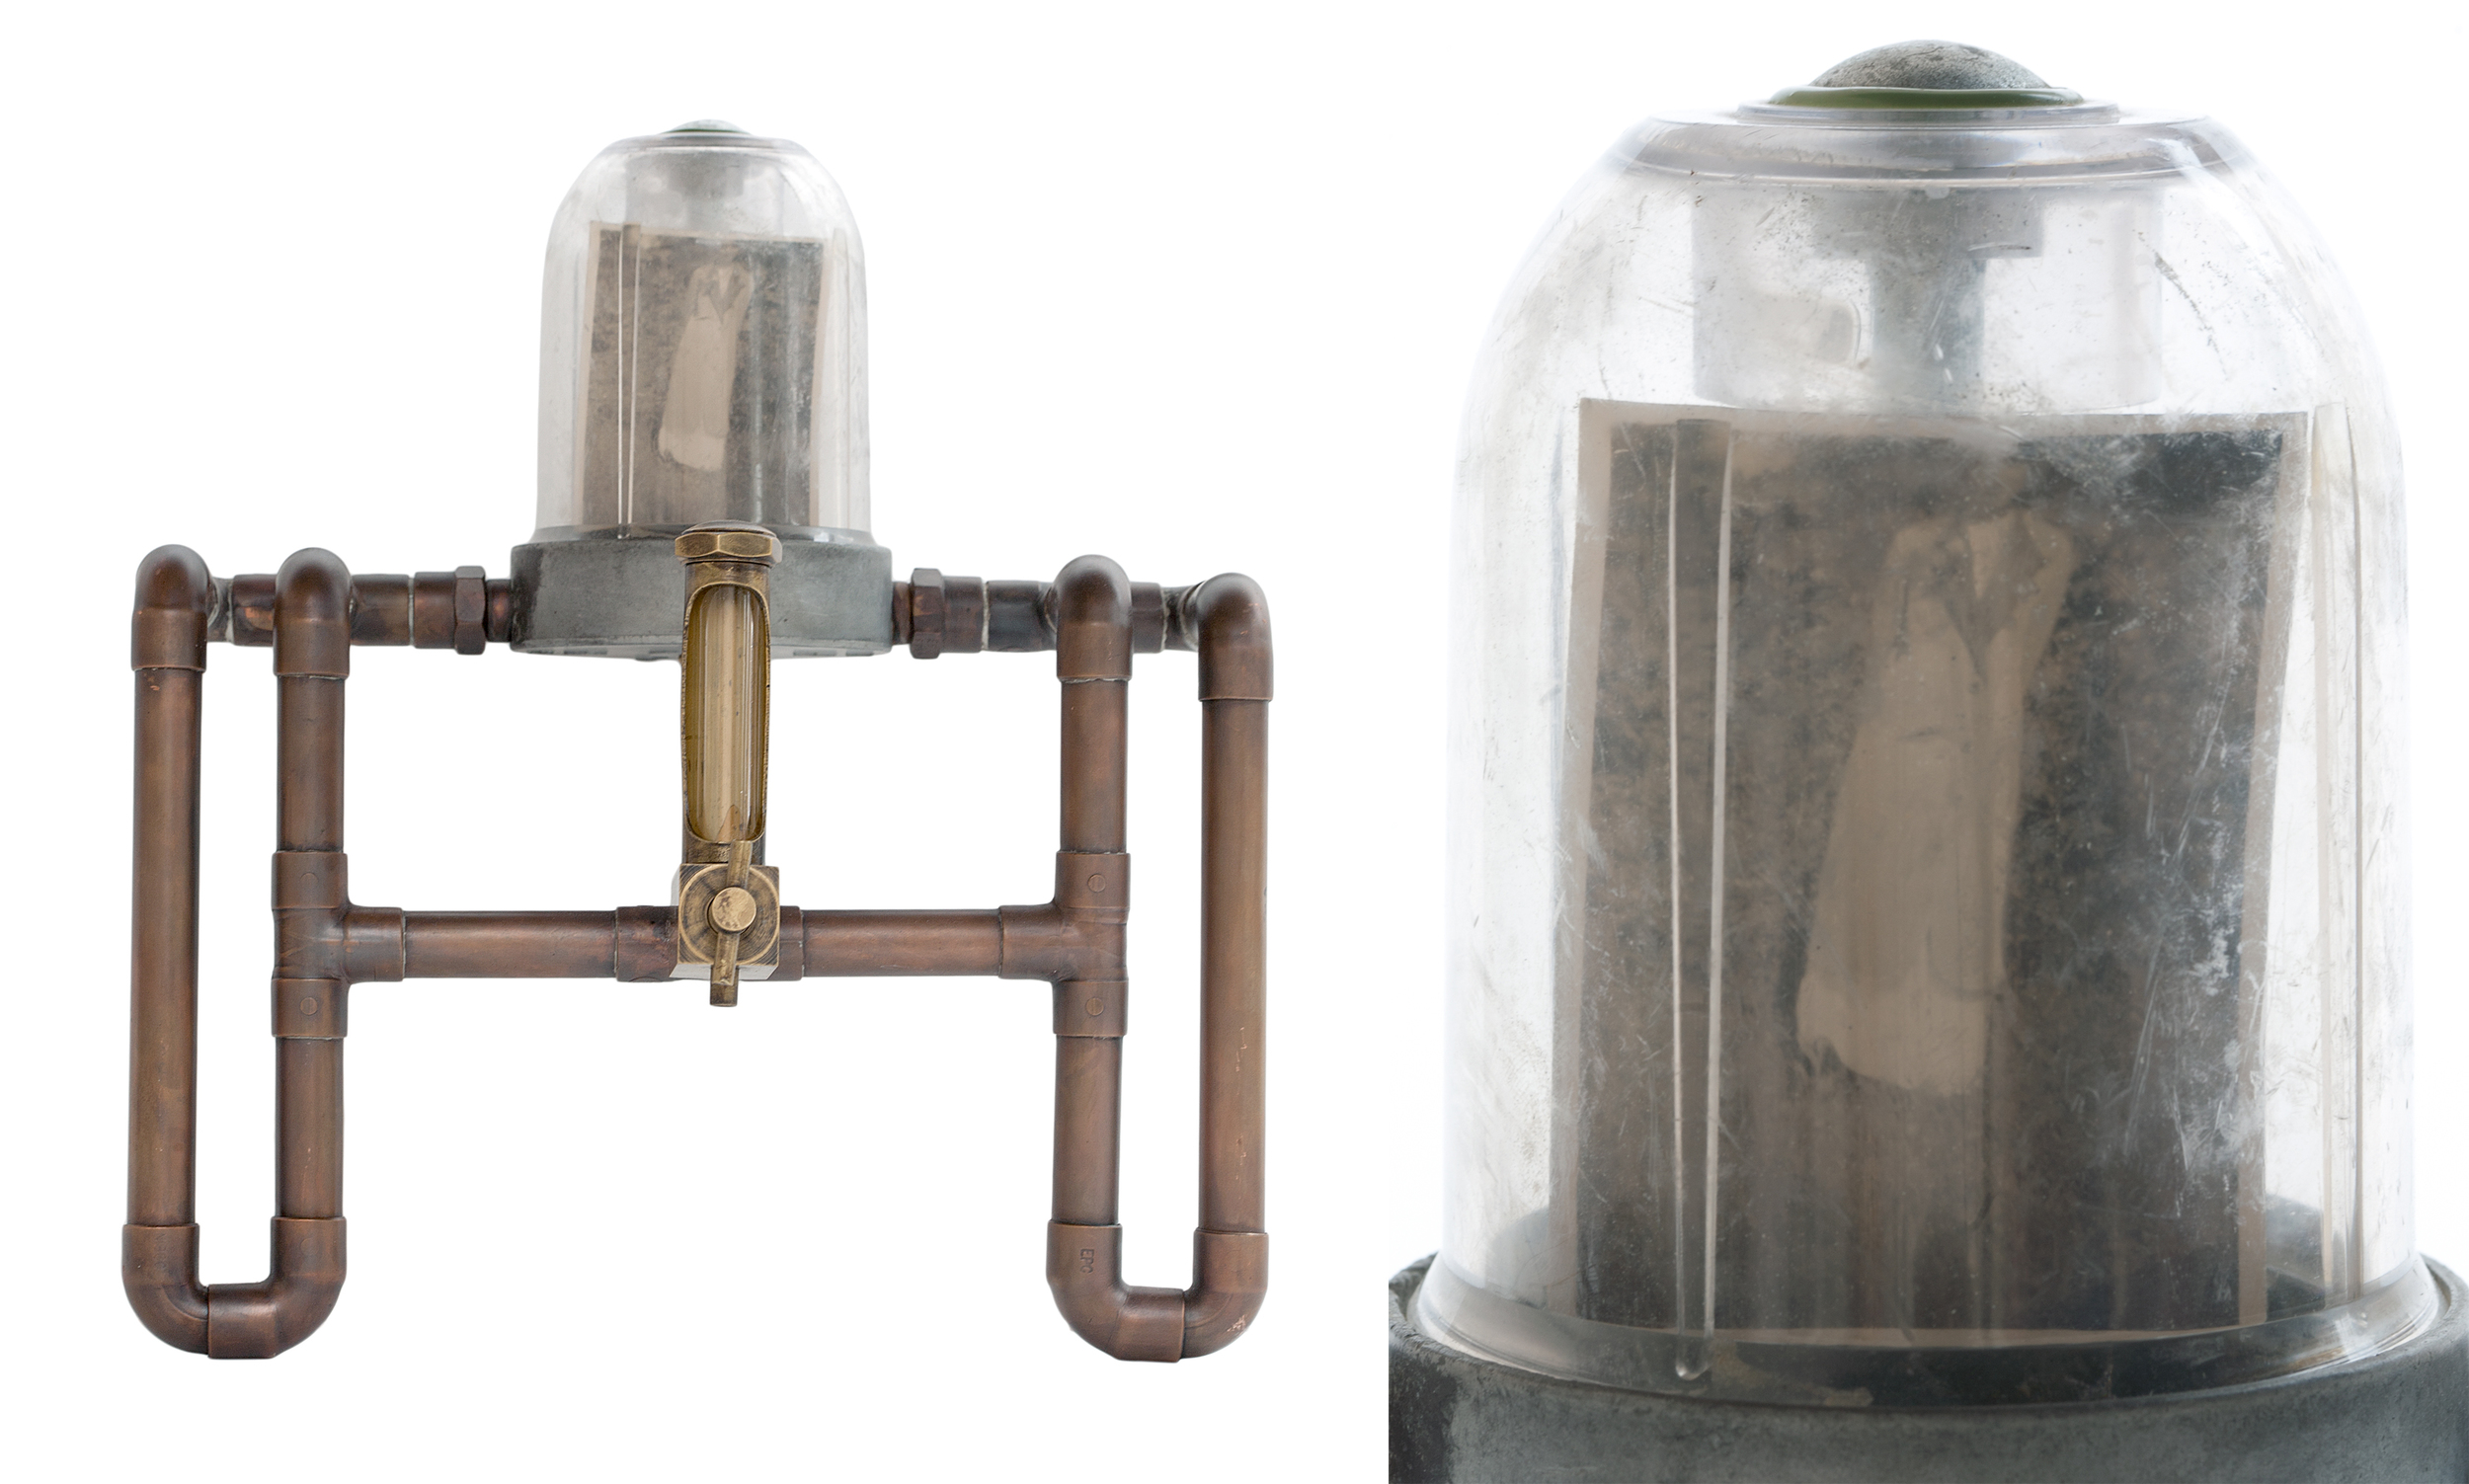 Device for the Distillation of Memory